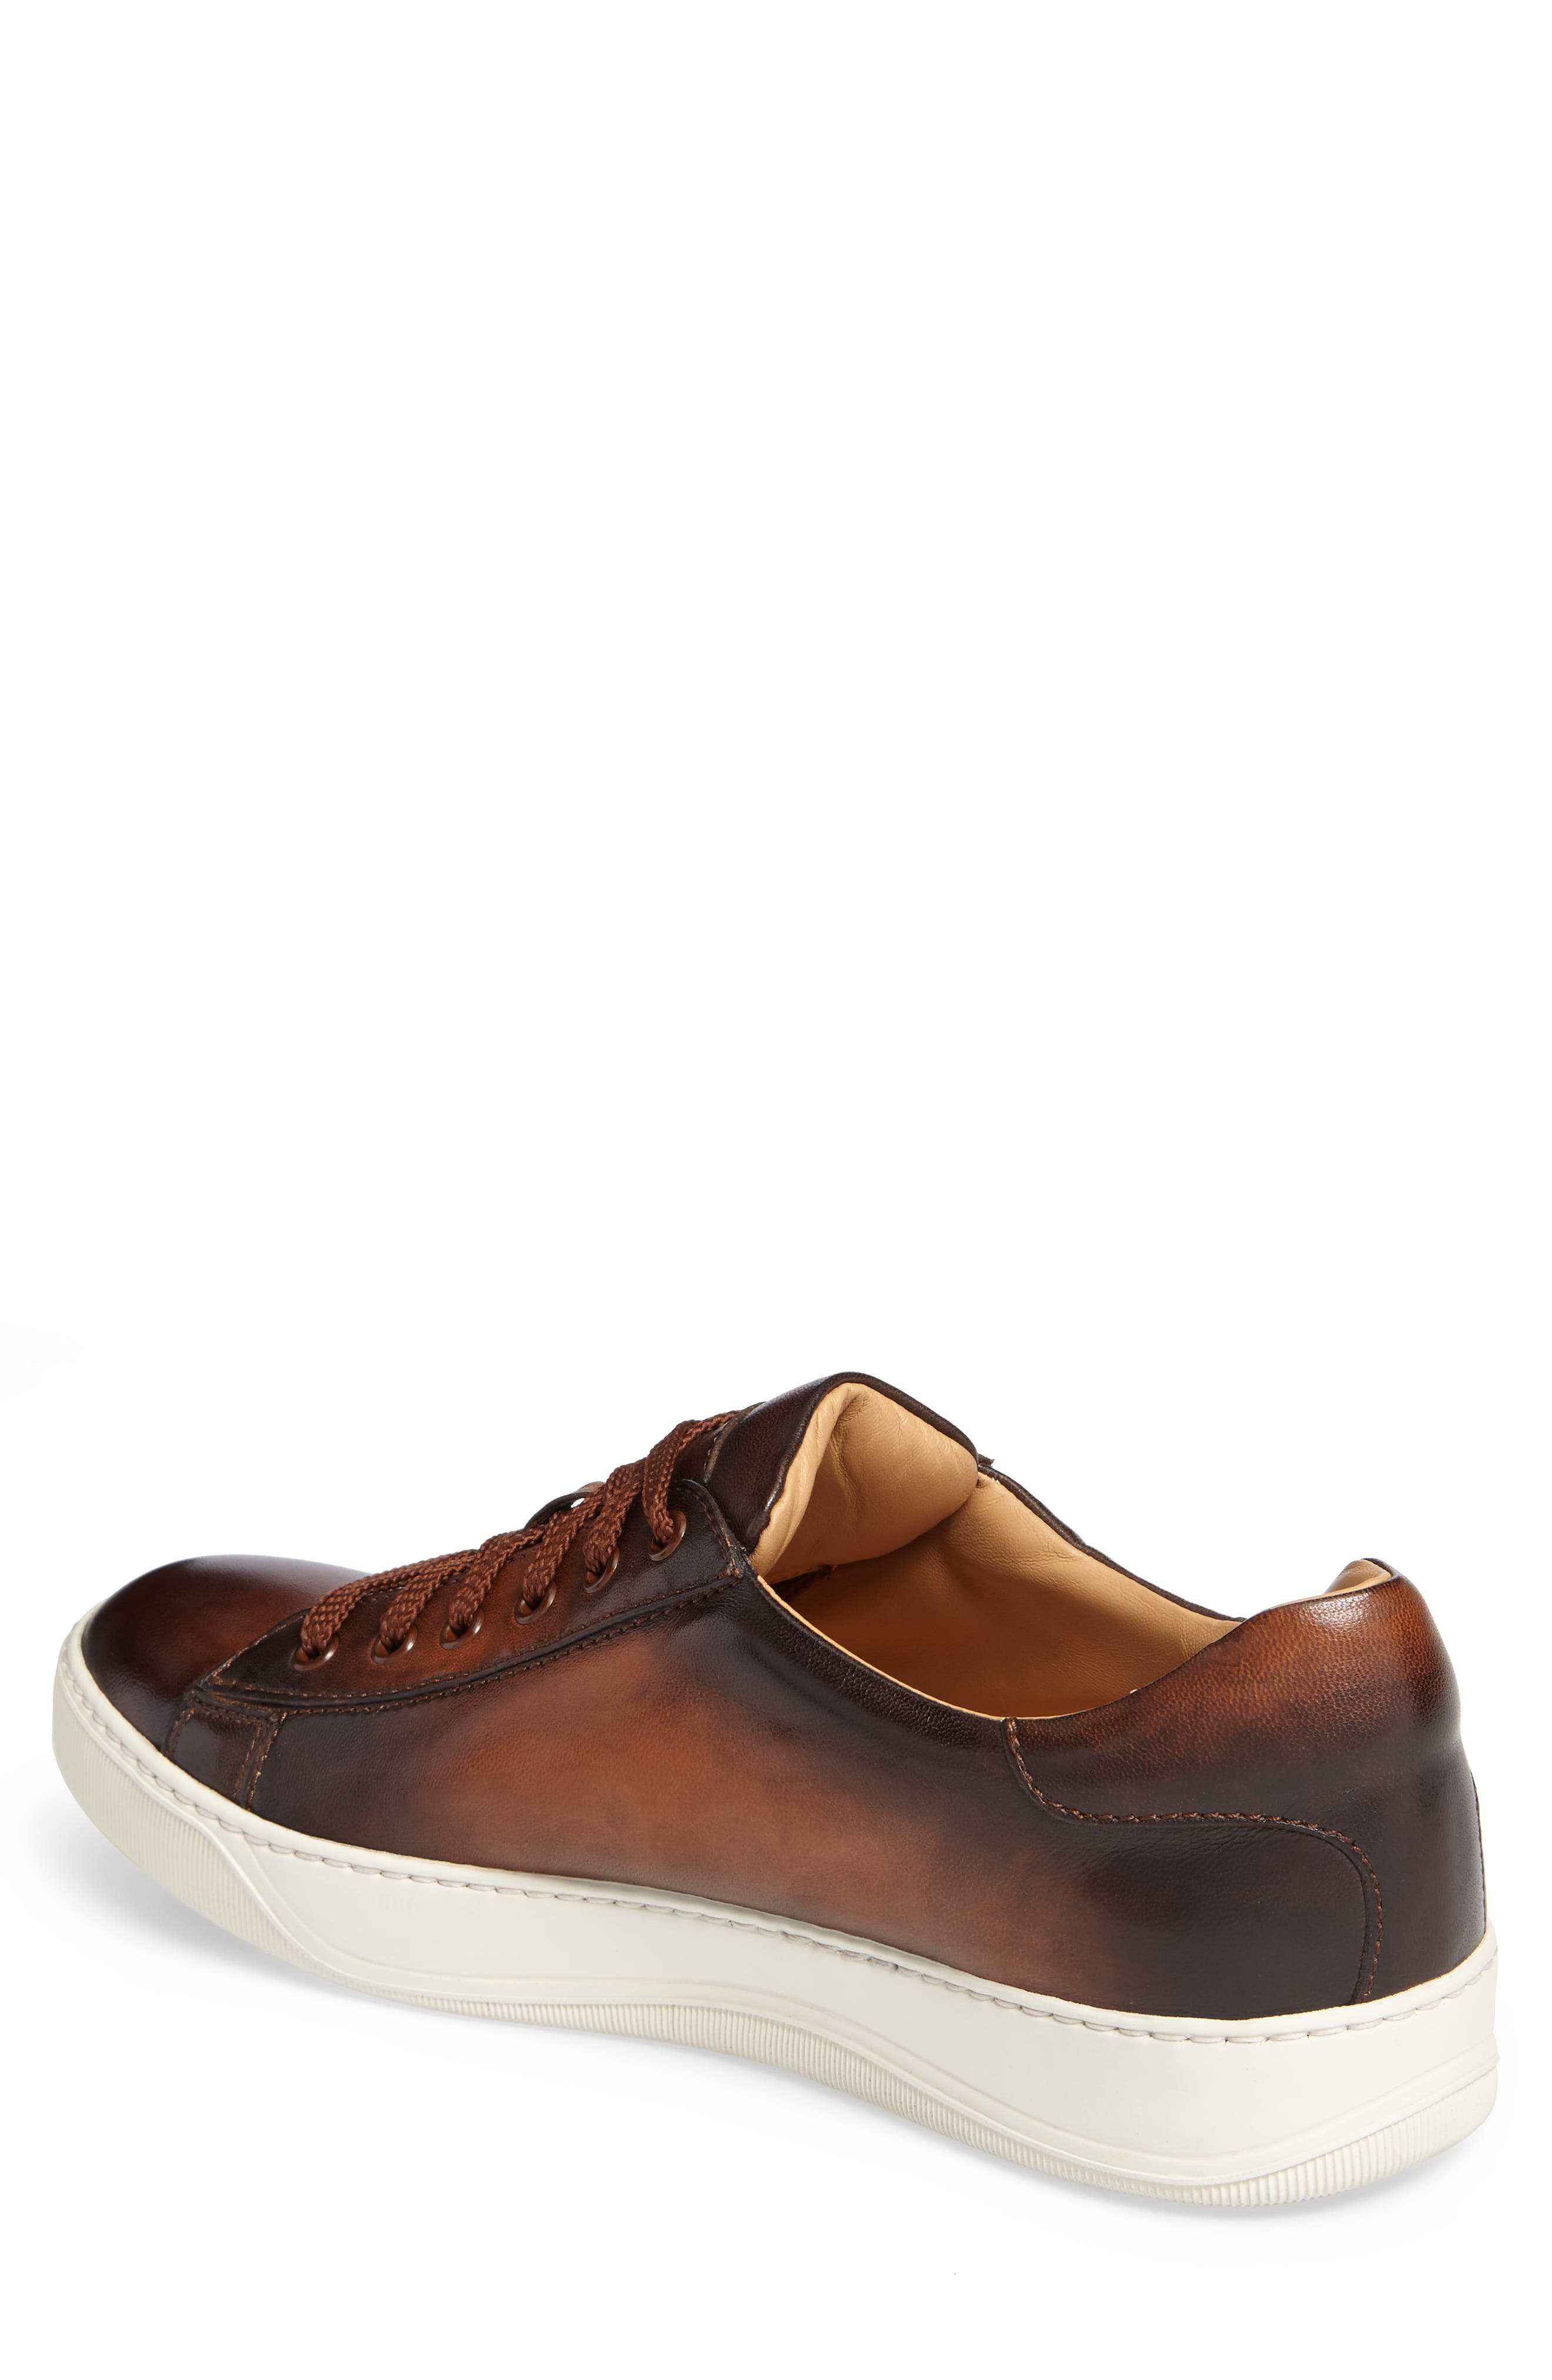 'Apache' Lace-Up Sneaker,                             Alternate thumbnail 2, color,                             Brown